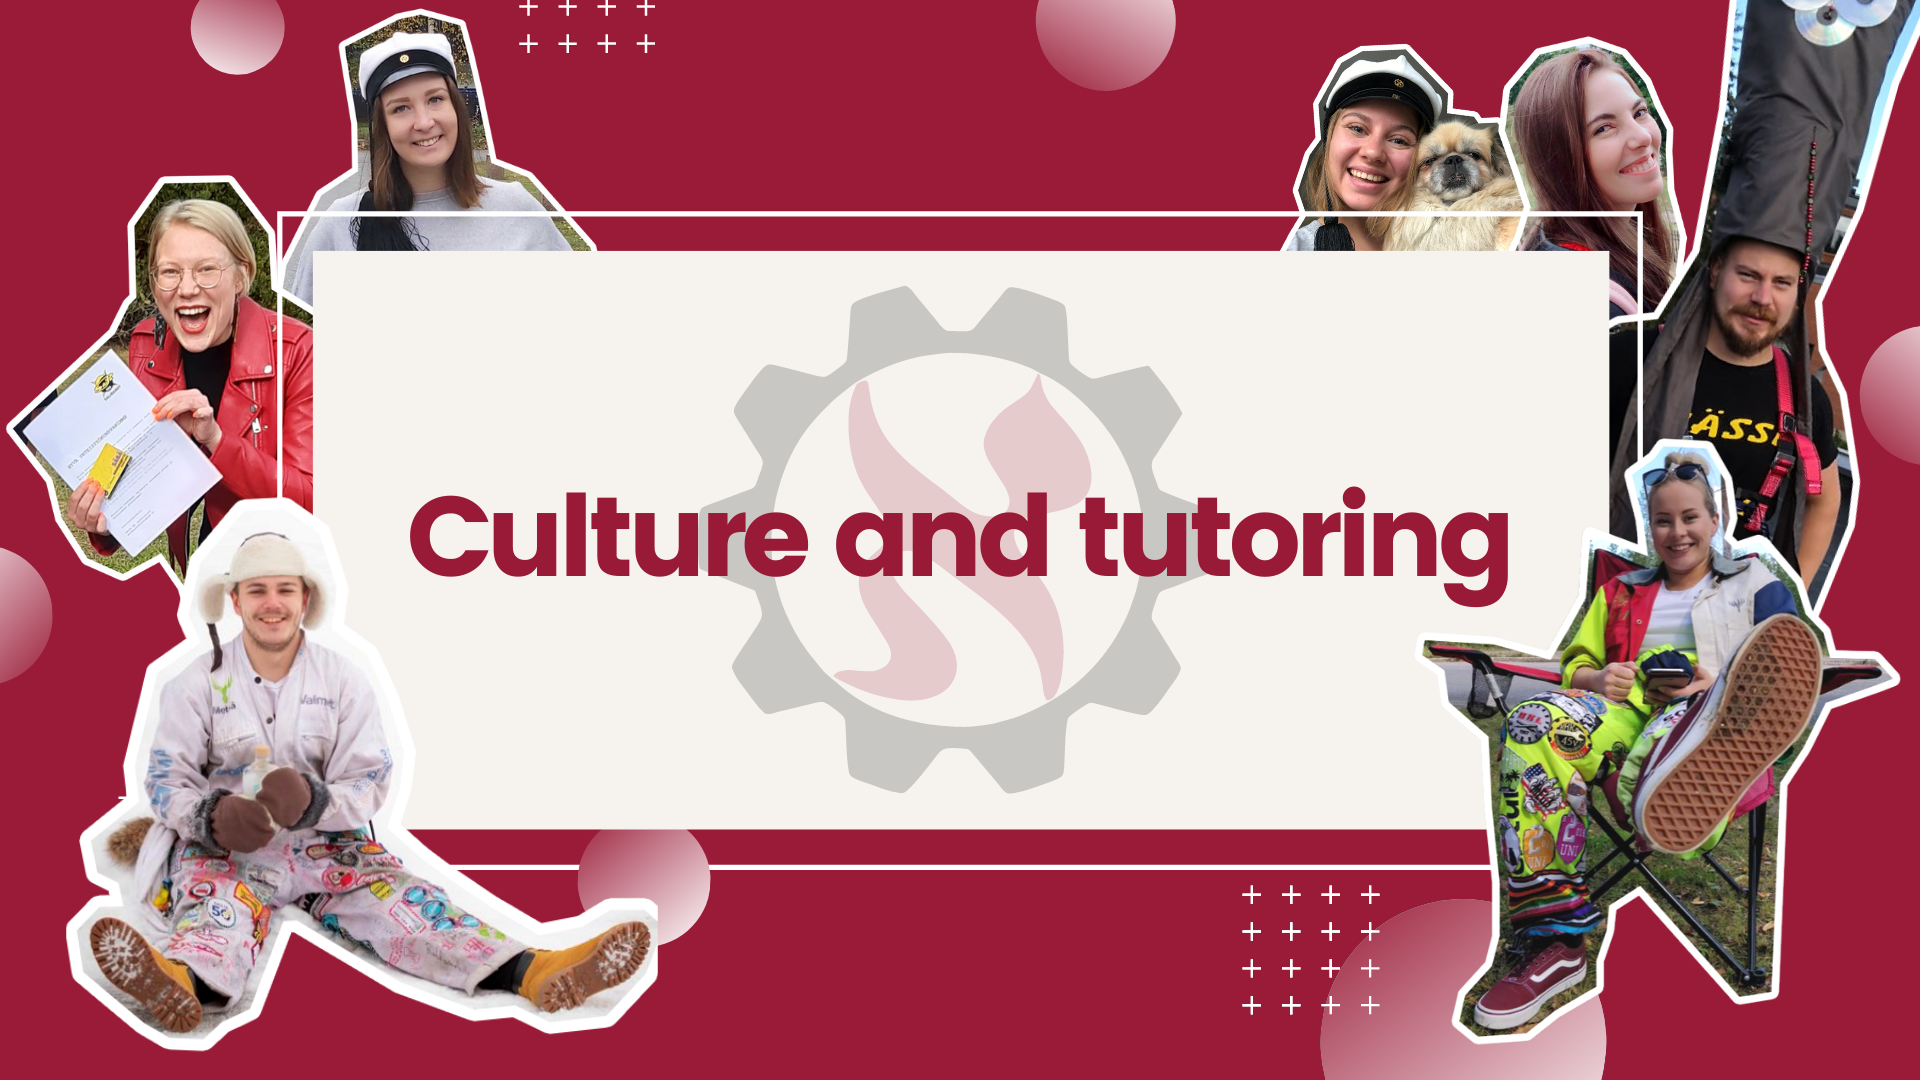 Culture and tutoring